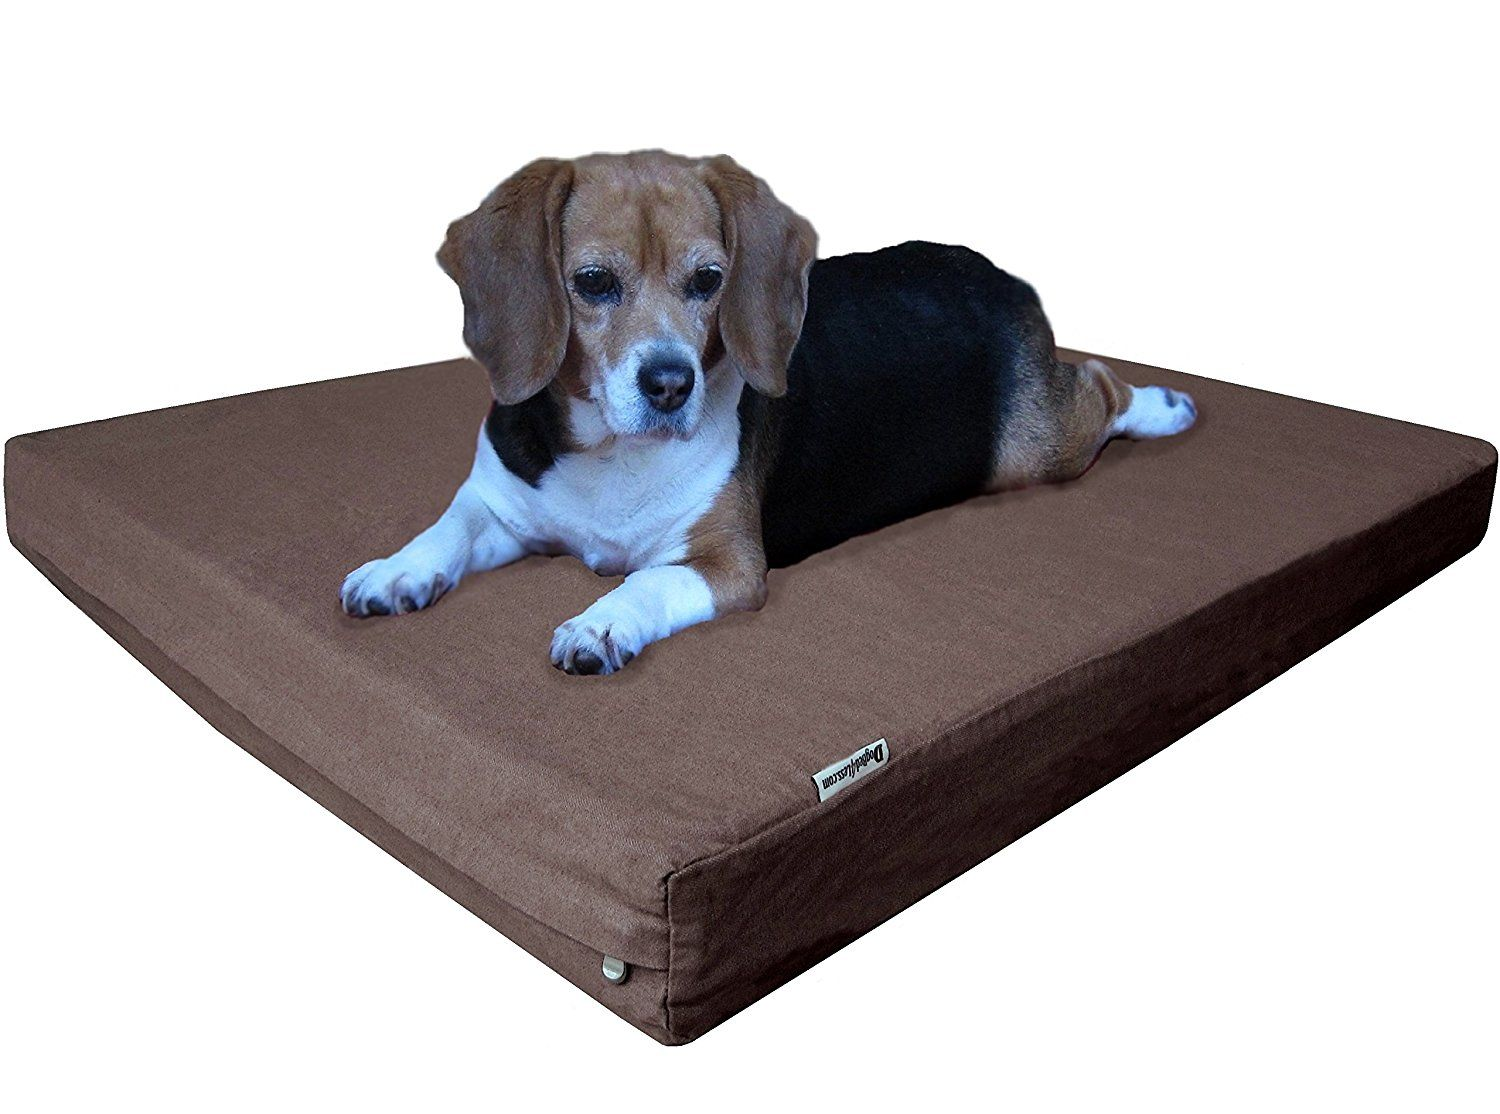 Dogbed4less Orthopedic Memory Foam Dog Bed for Small